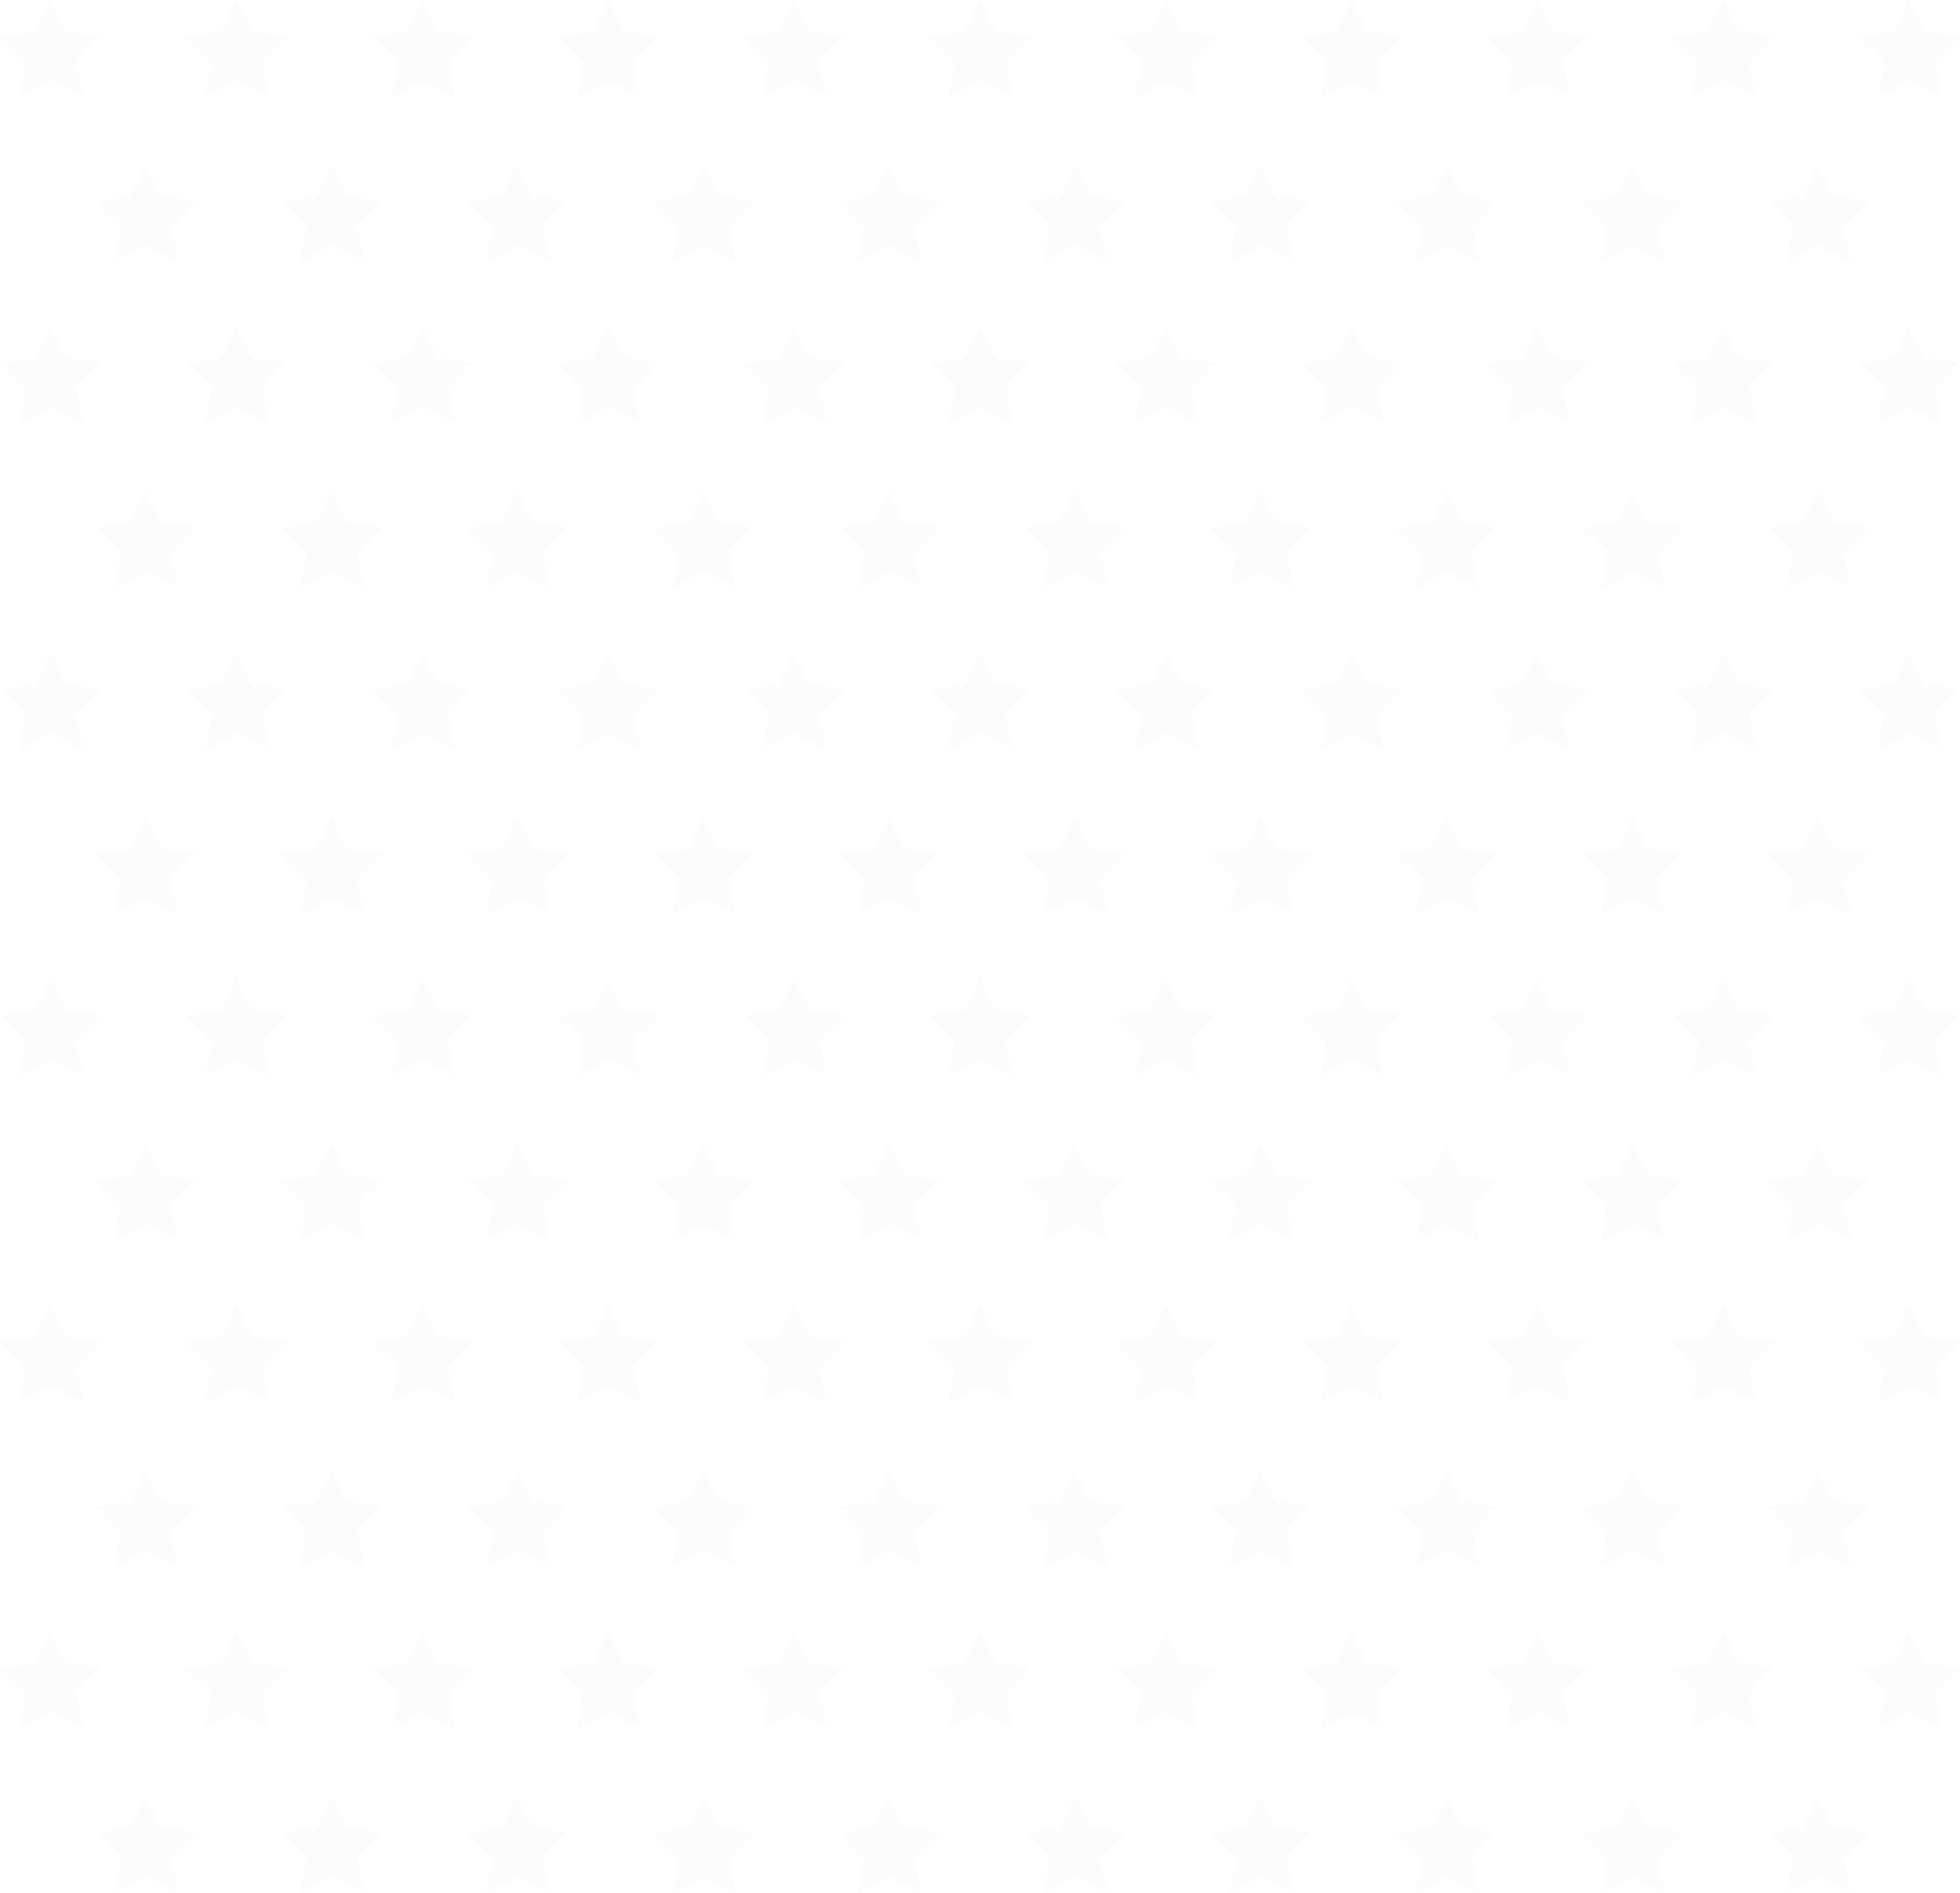 Background effect clip art. Stars transparent png clipart black and white stock